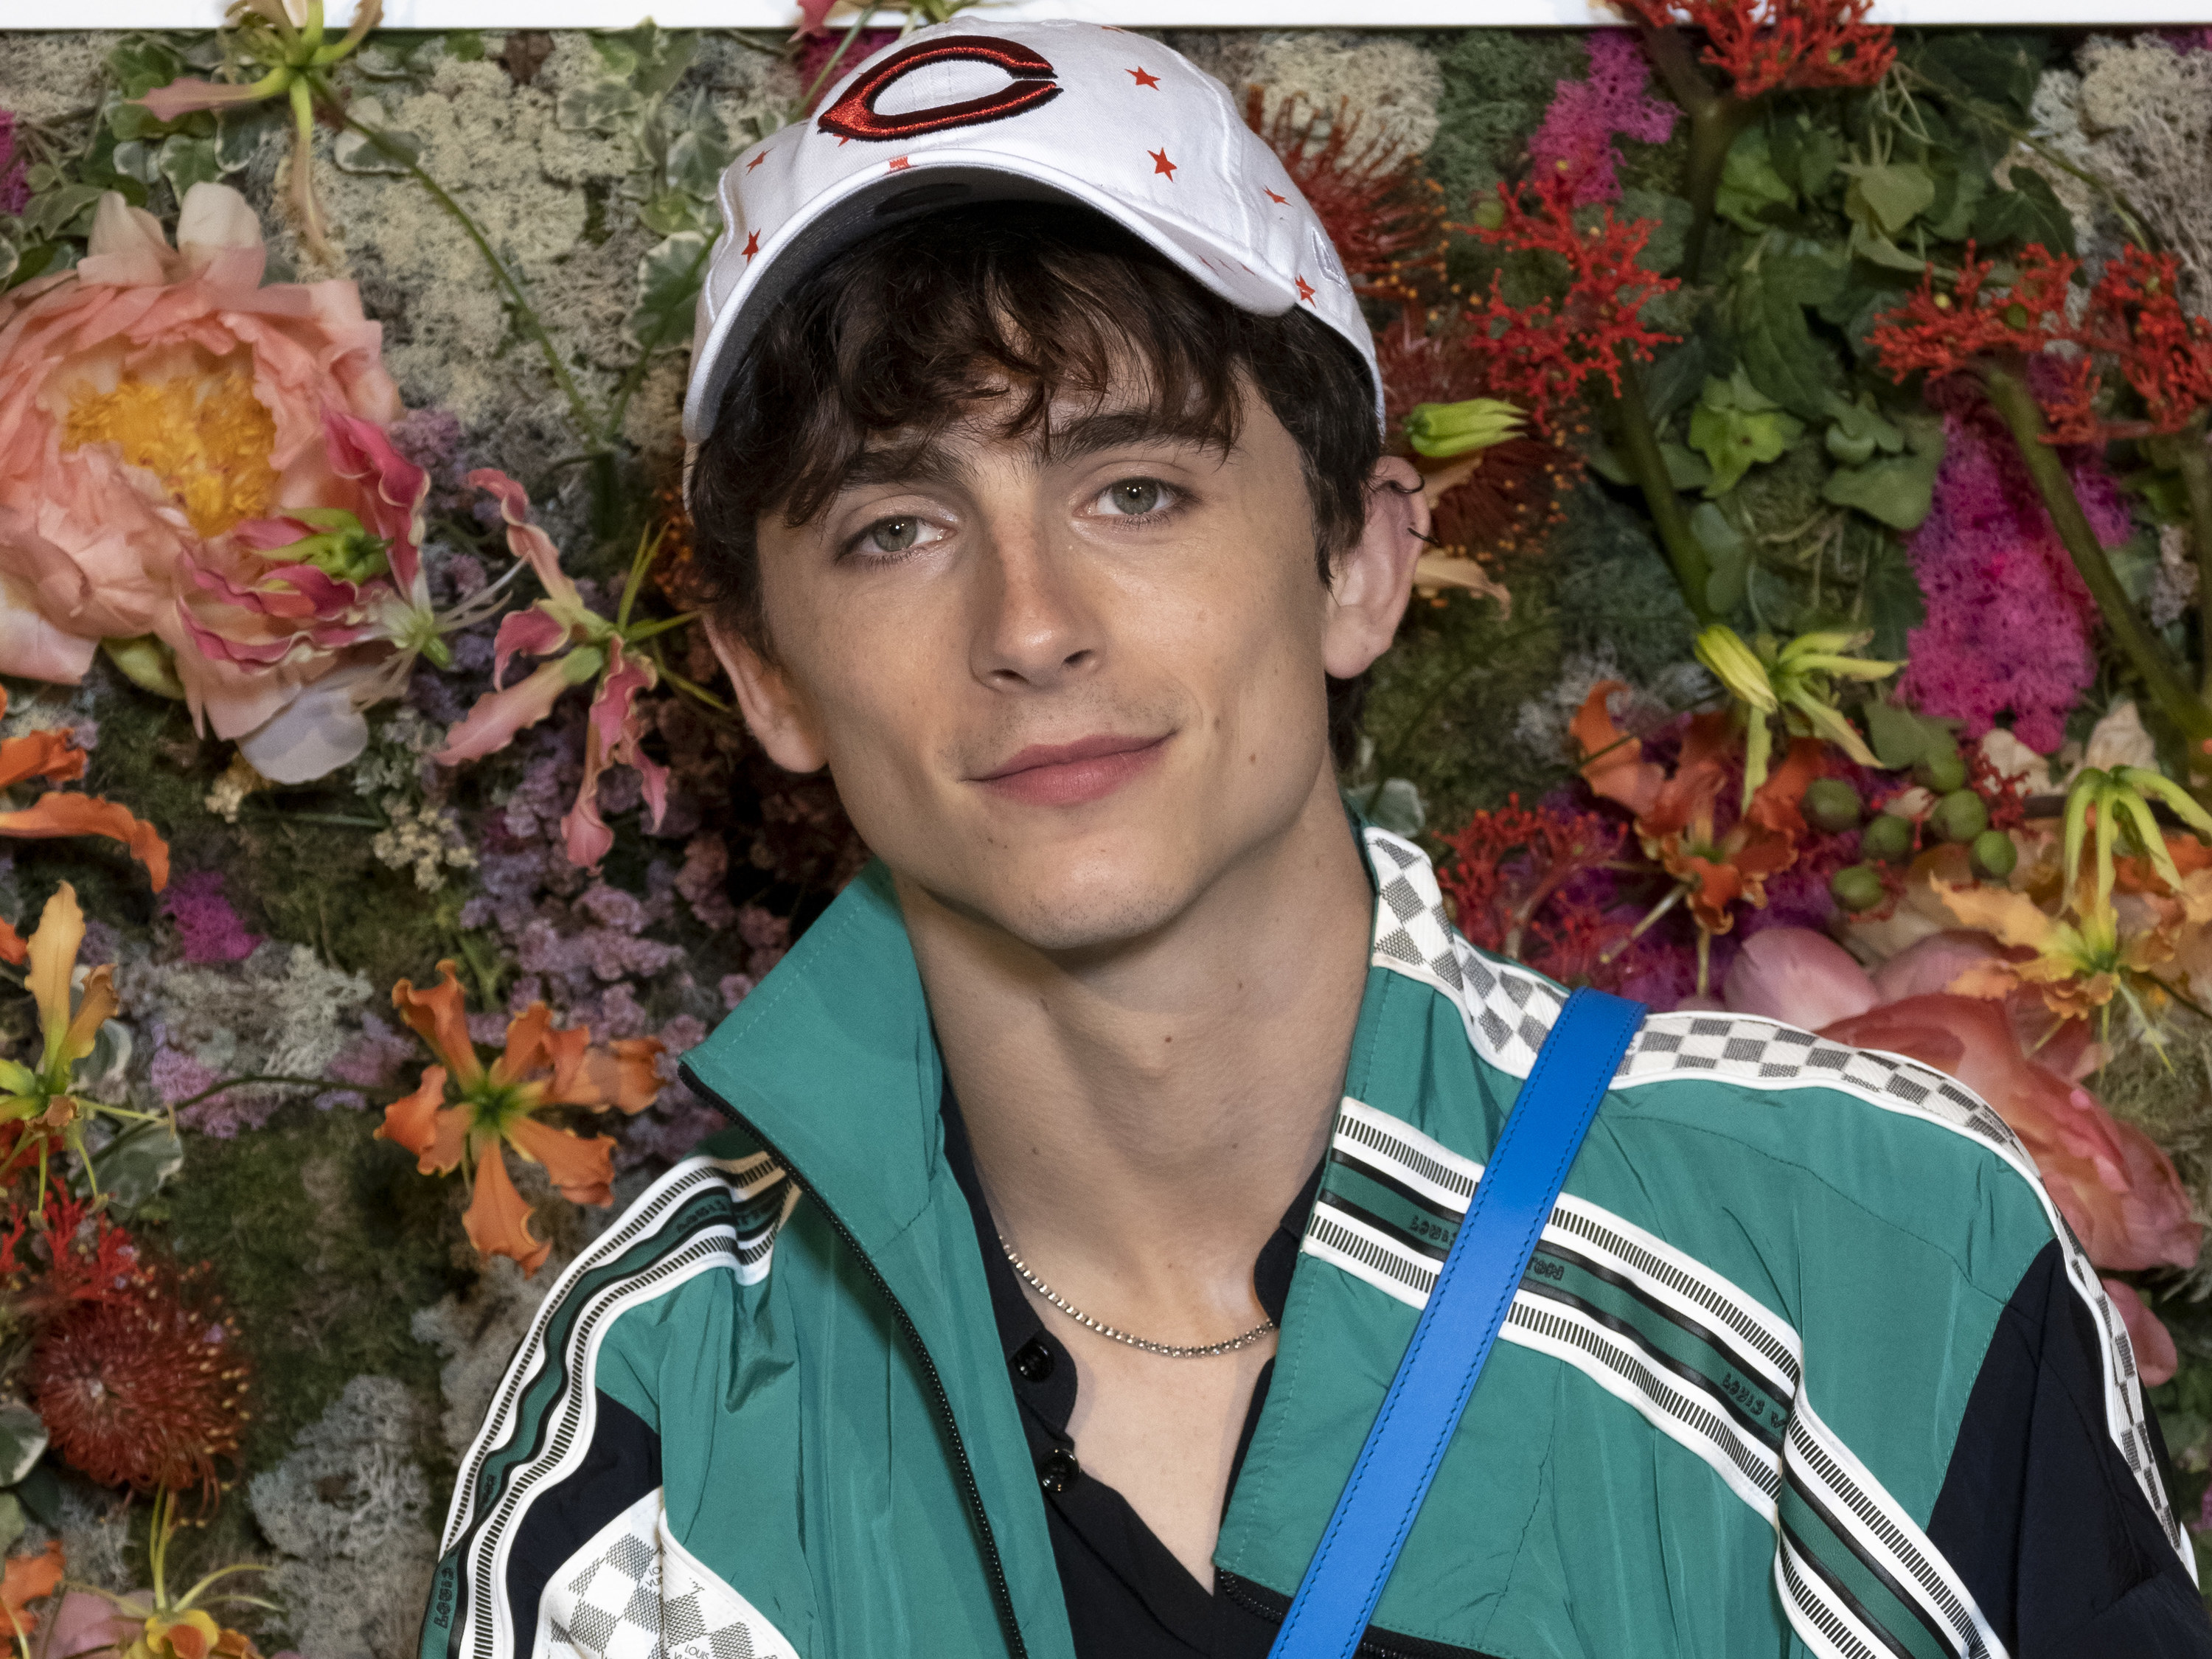 Timothée Chalamet is pictured standing in front of a floral backdrop at the Cannes Film Festival